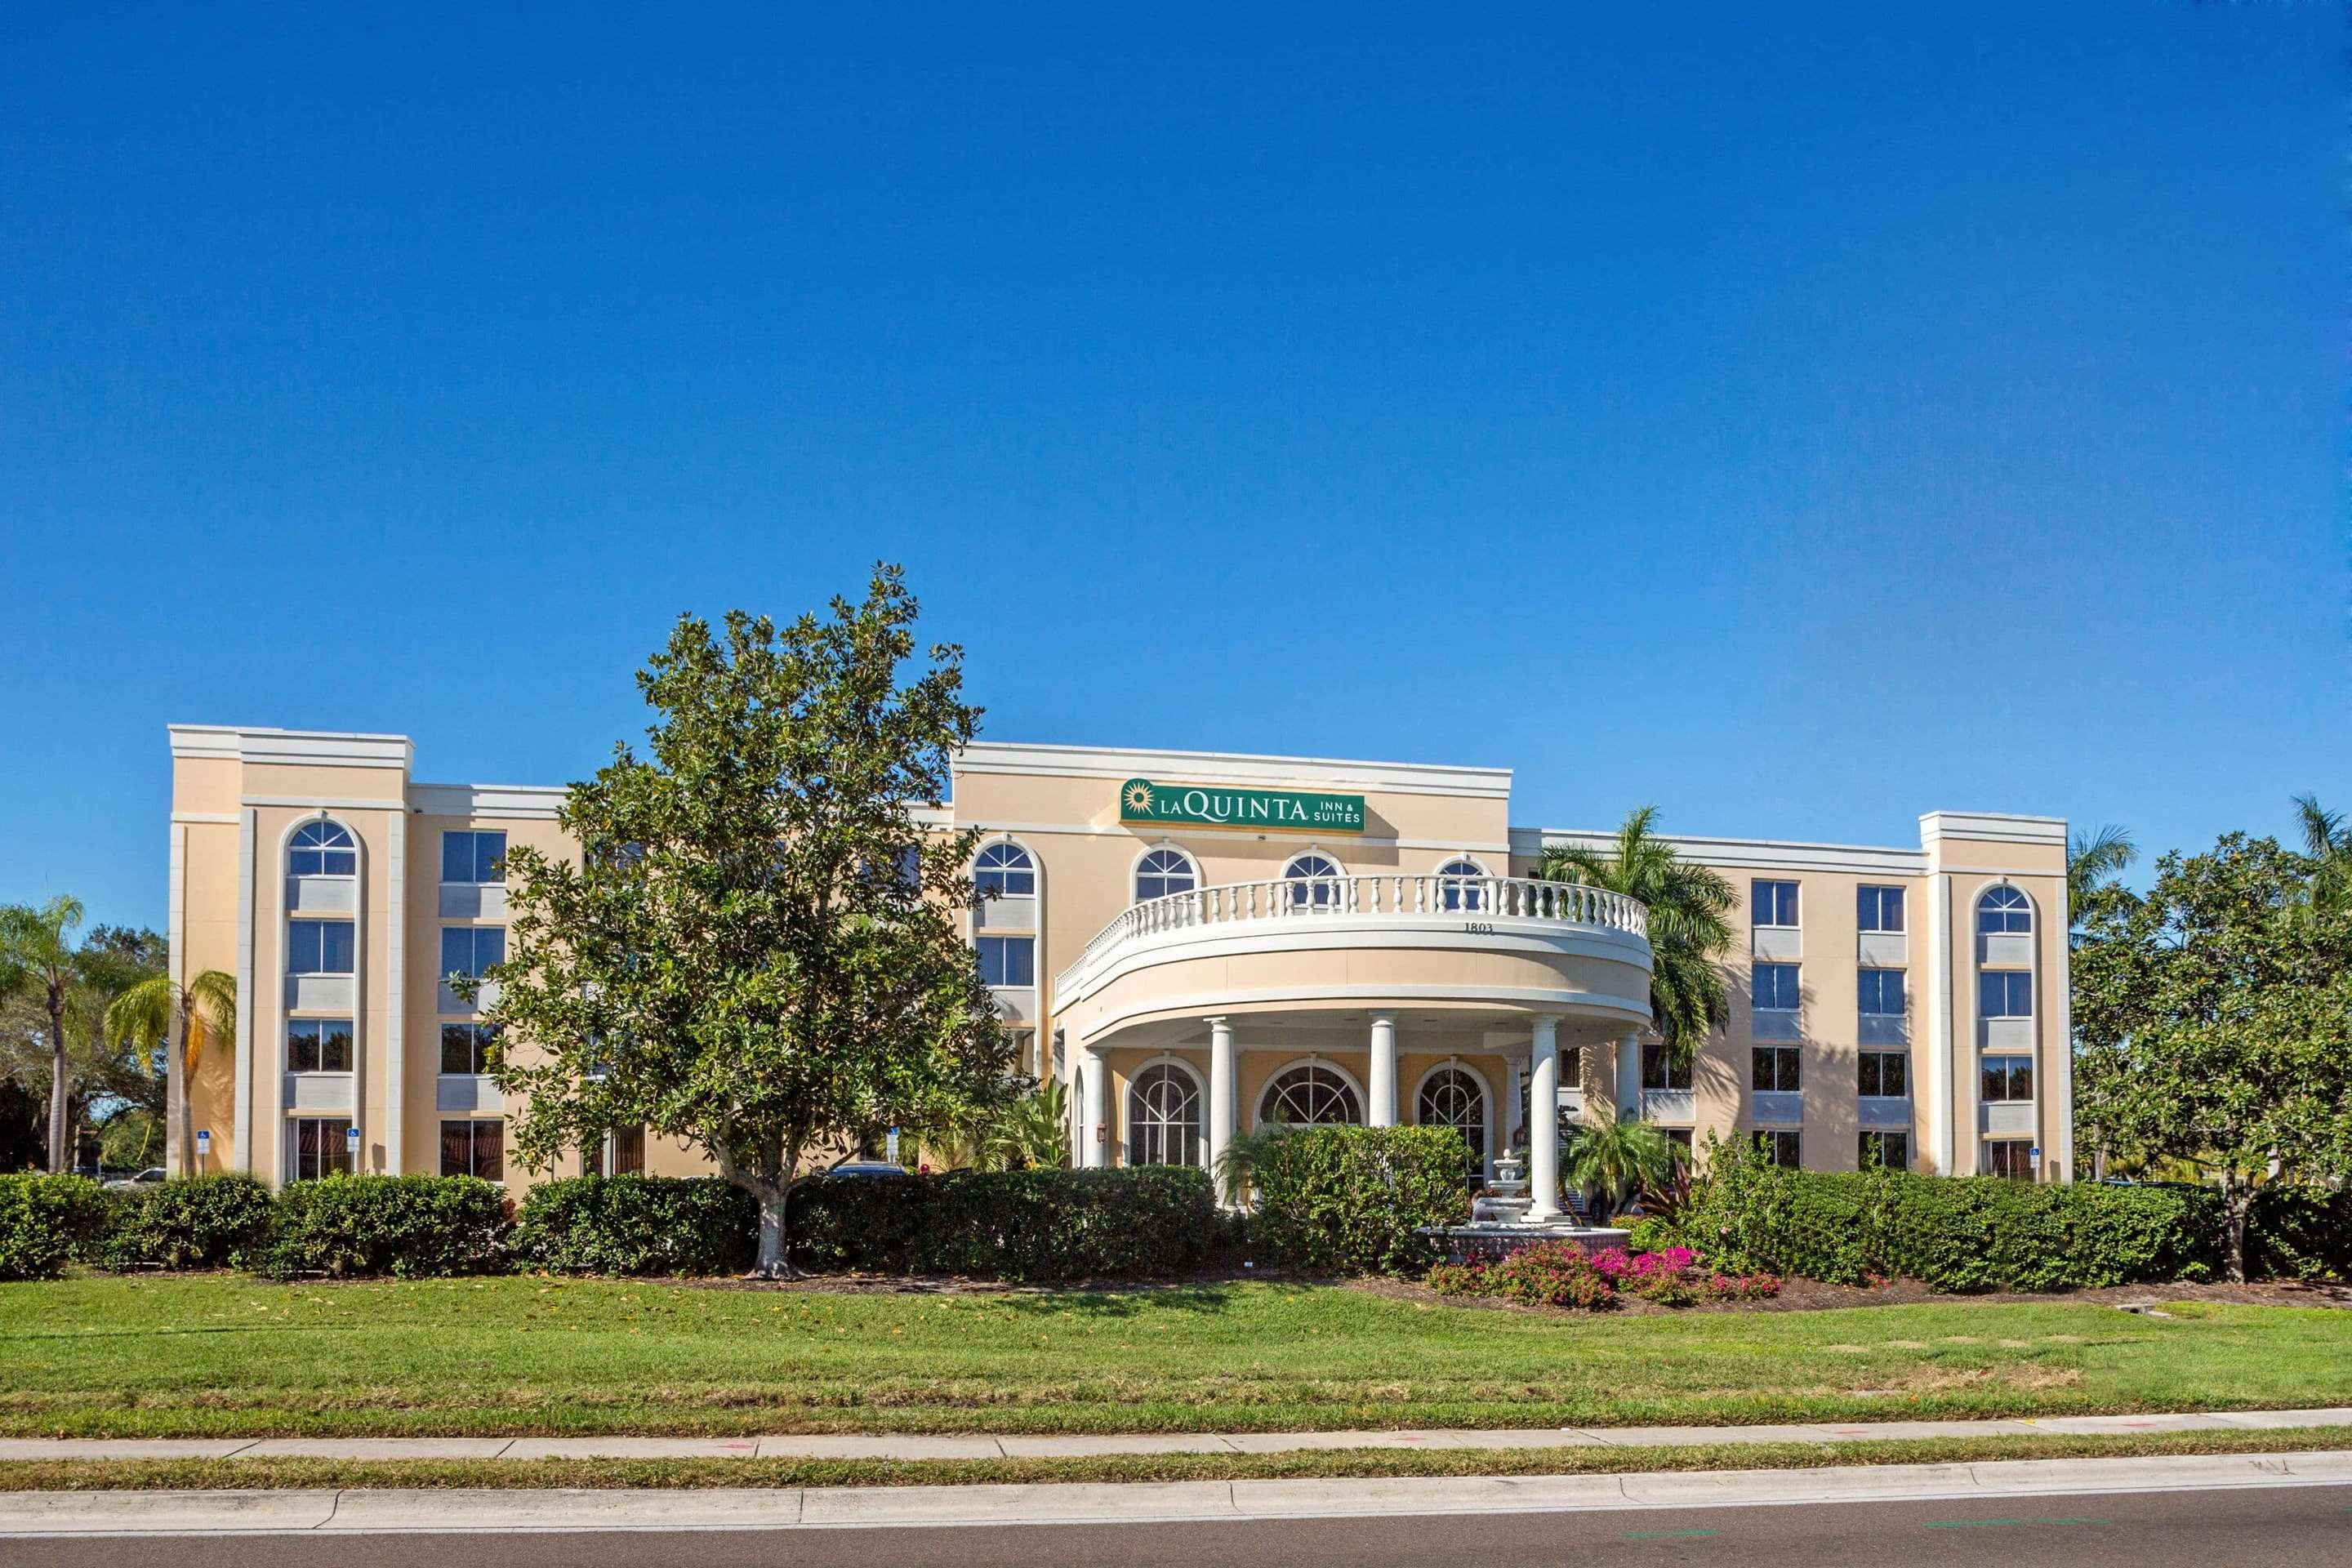 La Quinta Inn & Suites by Wyndham Sarasota Downtown